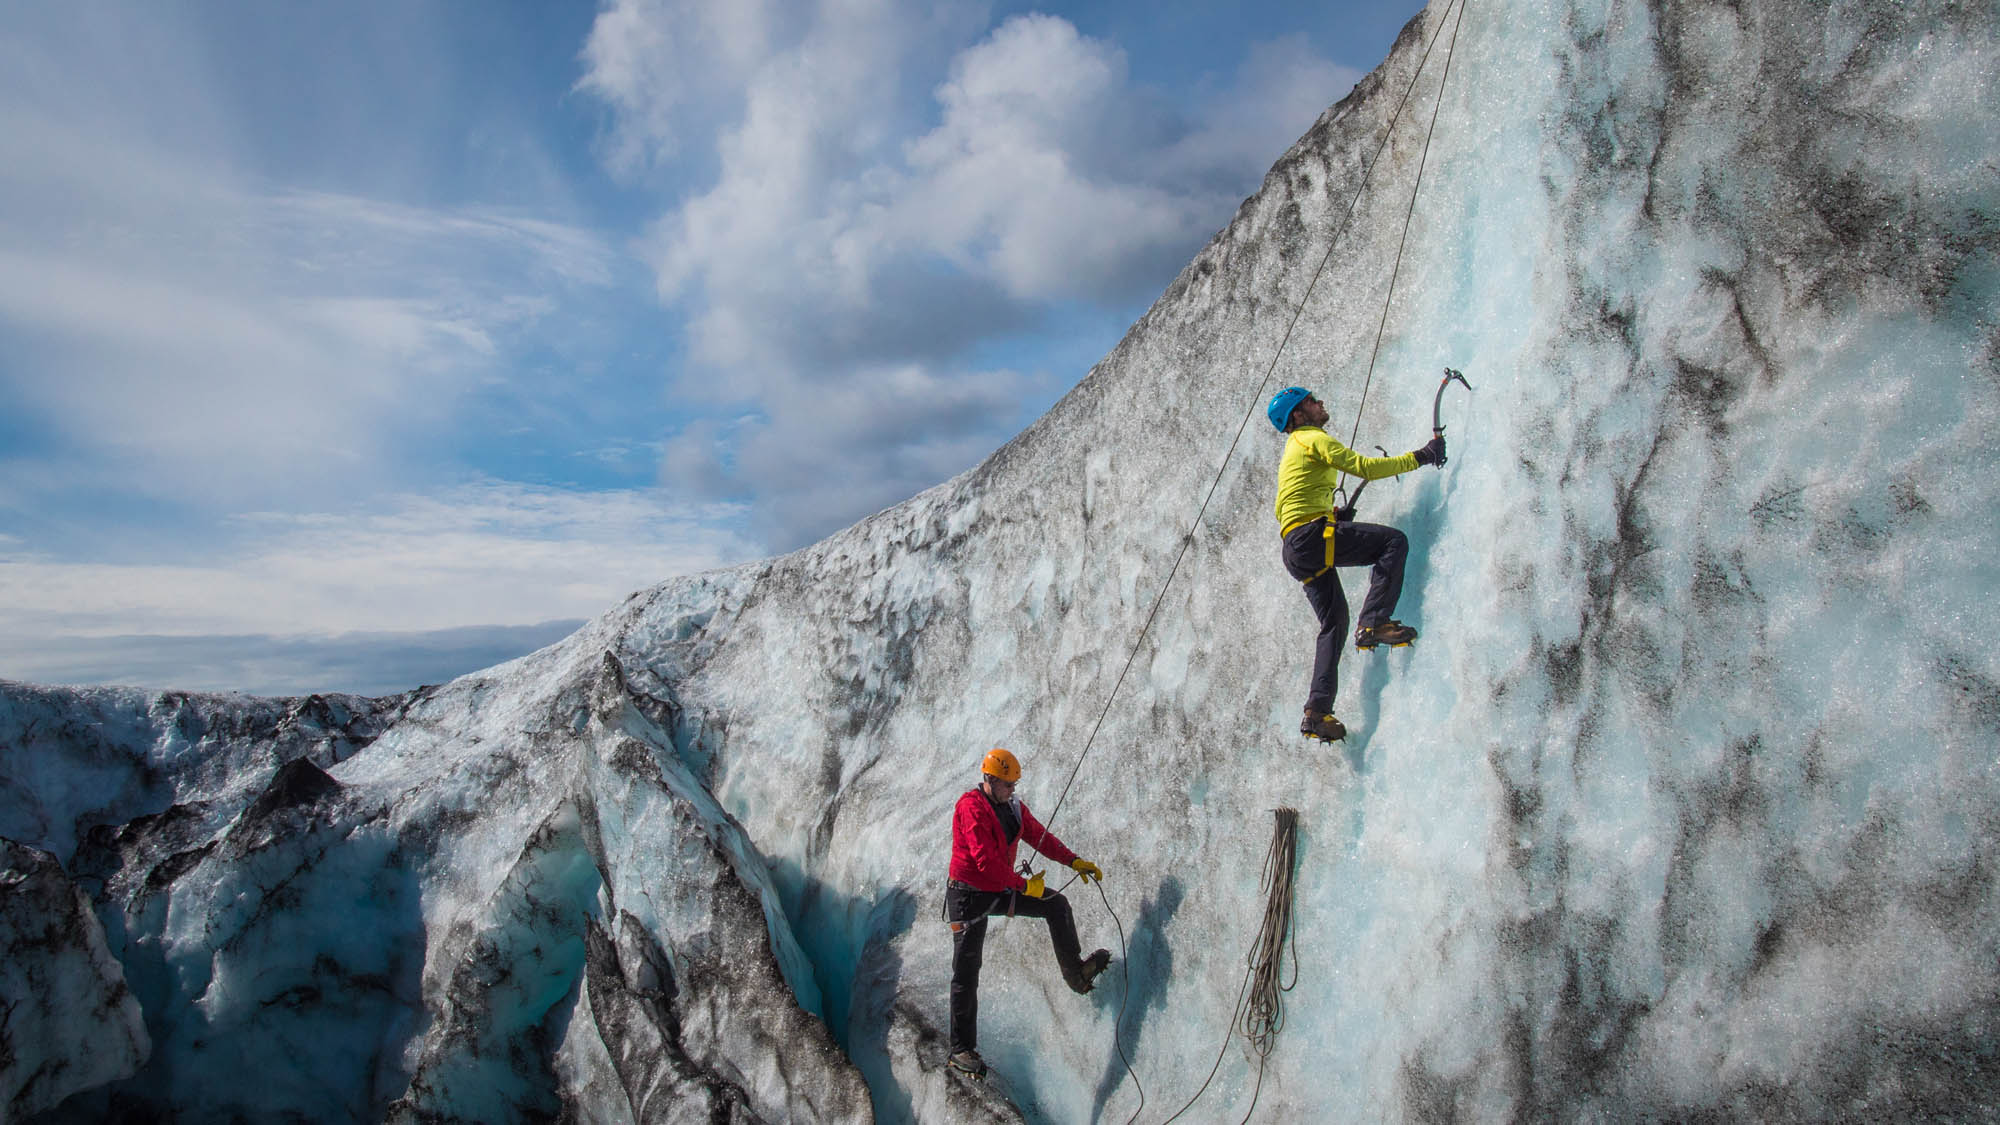 Iceland glacier walk and ice climbing - photo by Jan Zelina